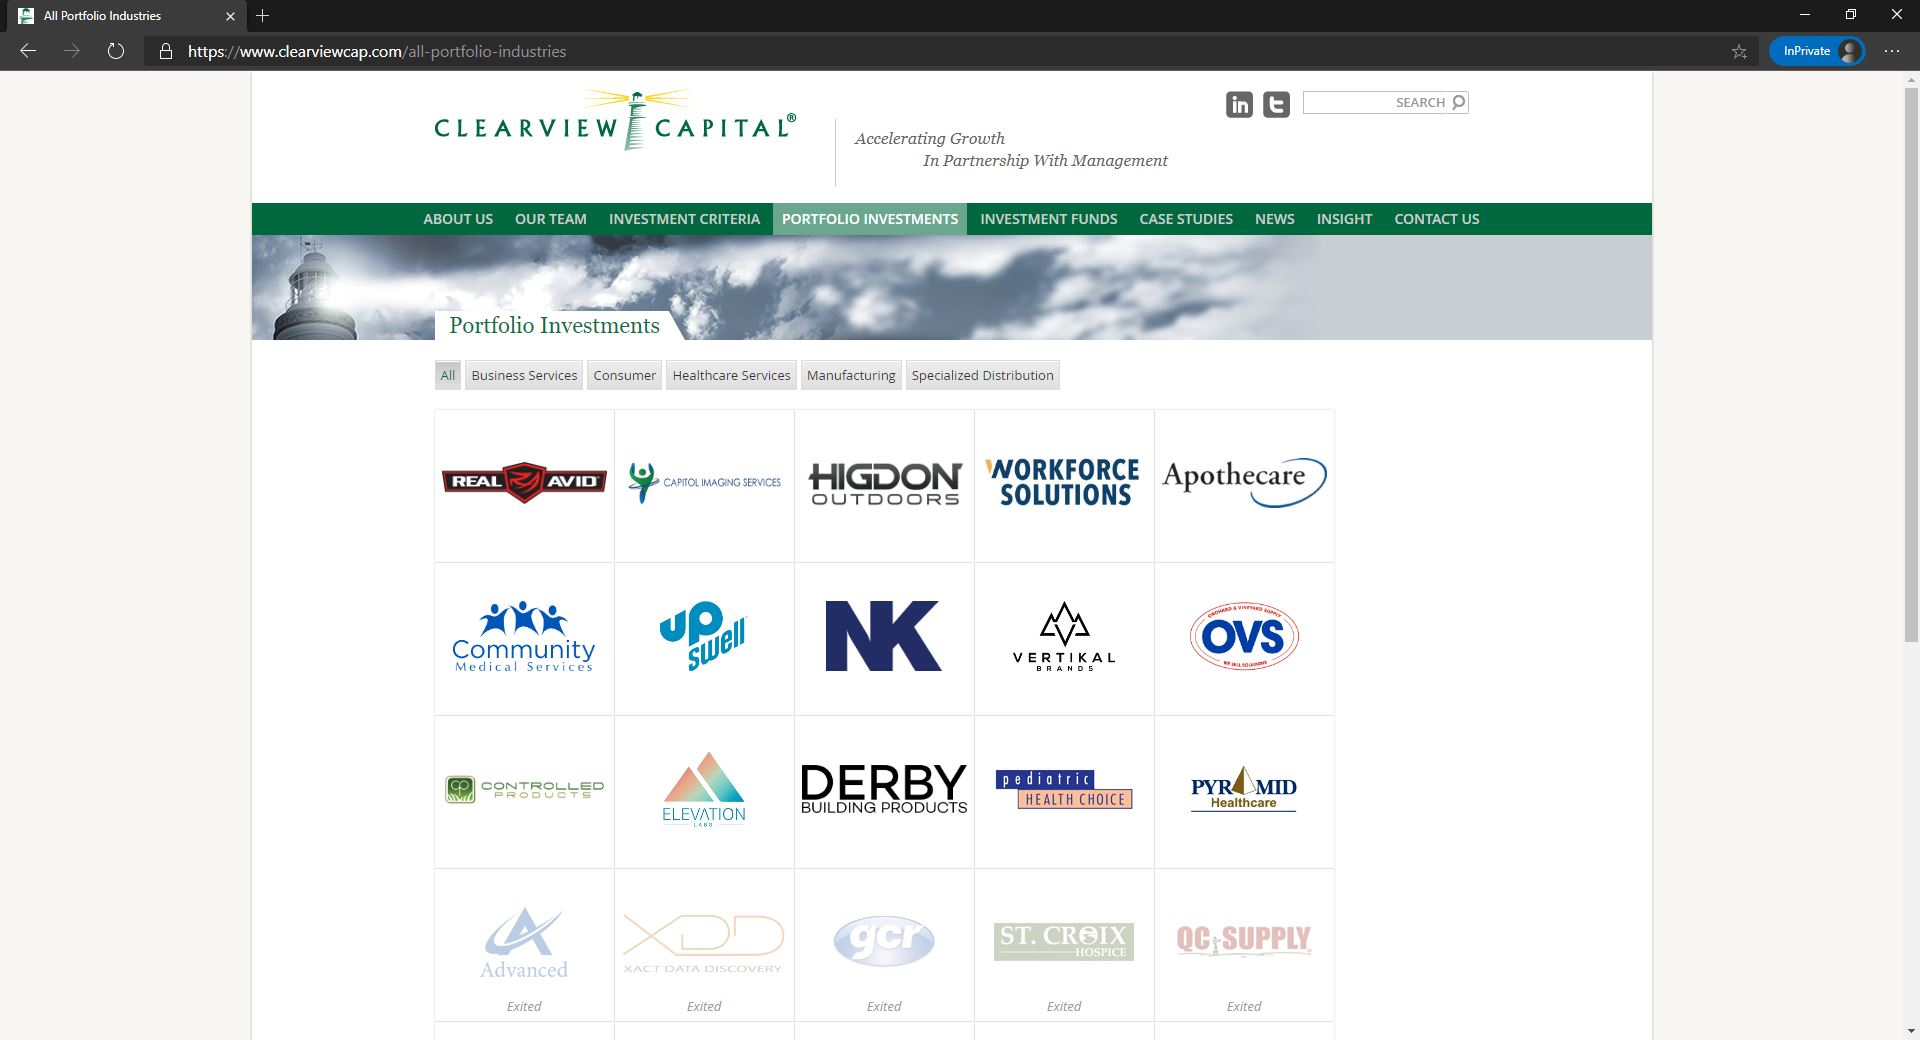 Clearview Capital website